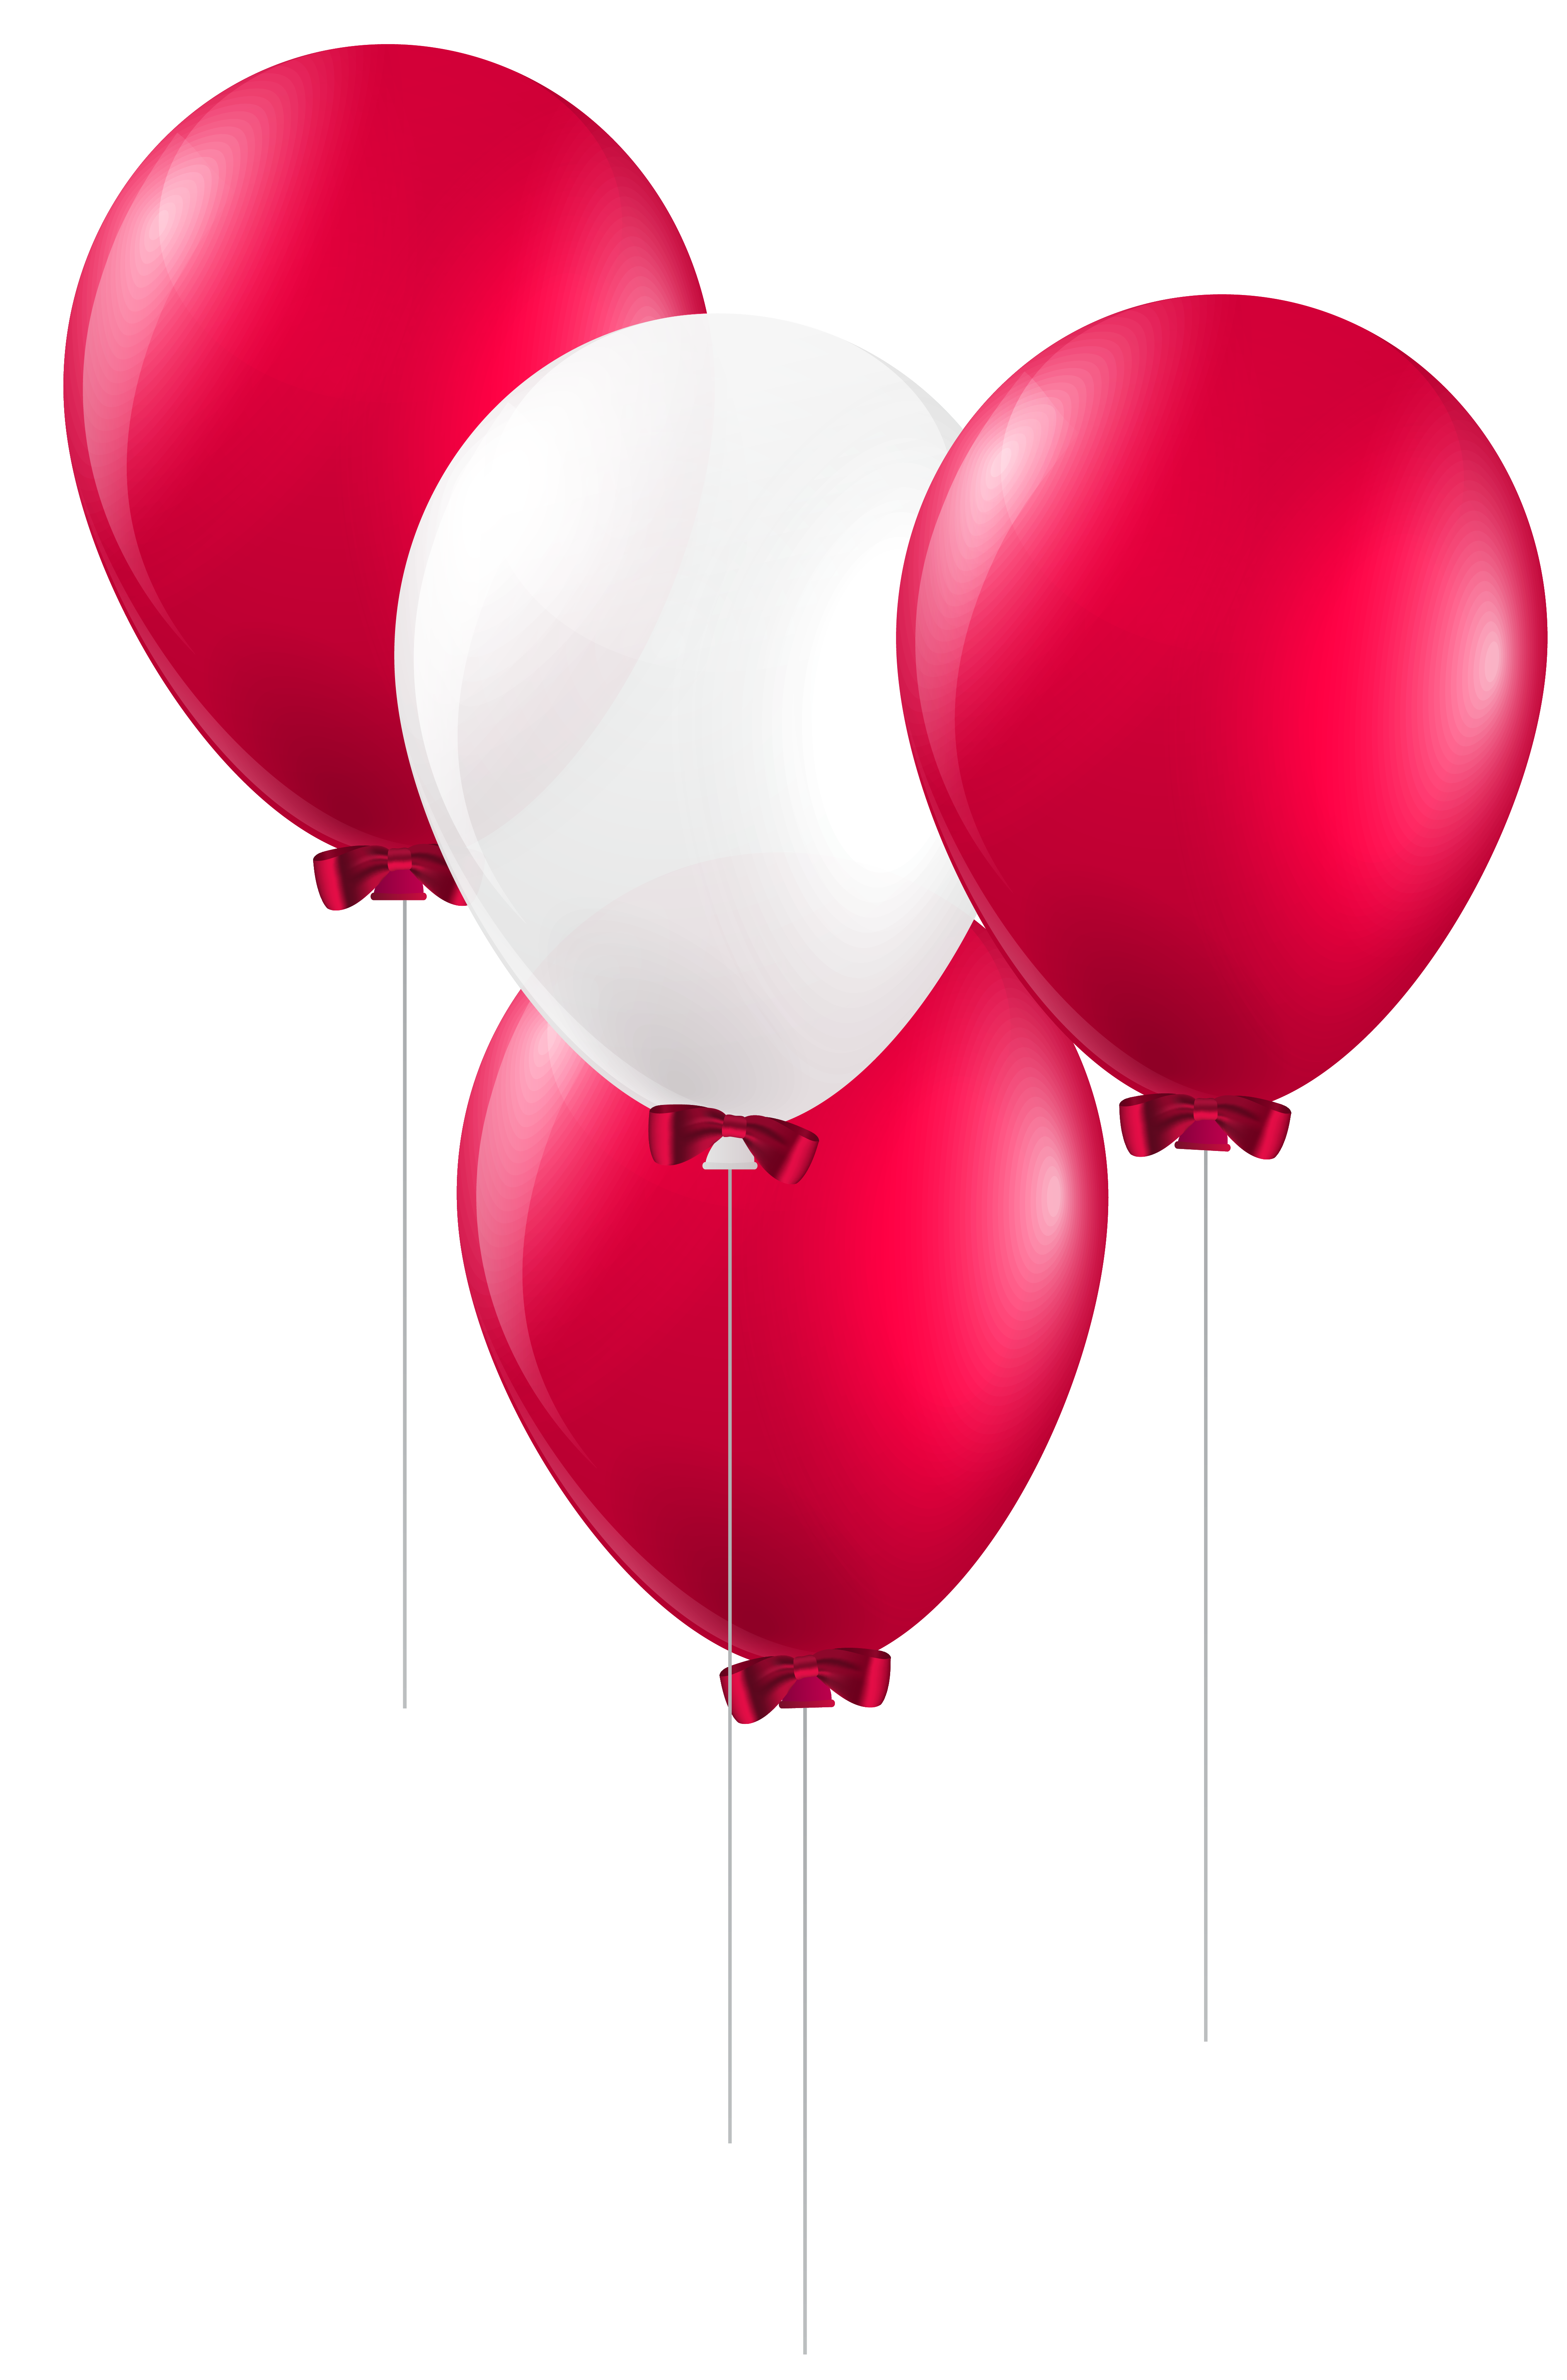 White balloons png. Red and clip art